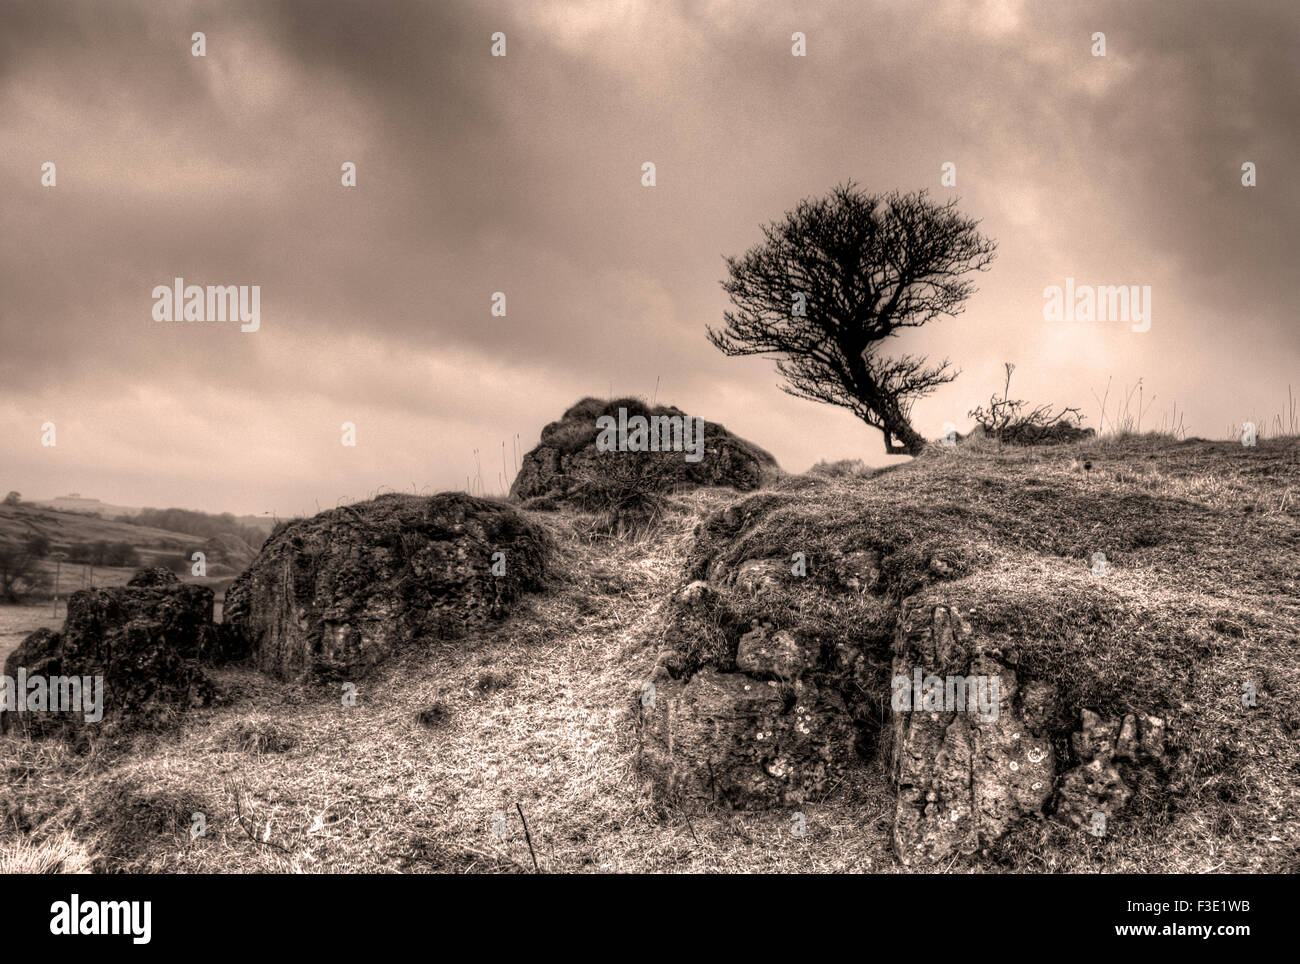 A lone tree stands against the elements at Harboro Rocks- A Sepia Toned Study - Stock Image